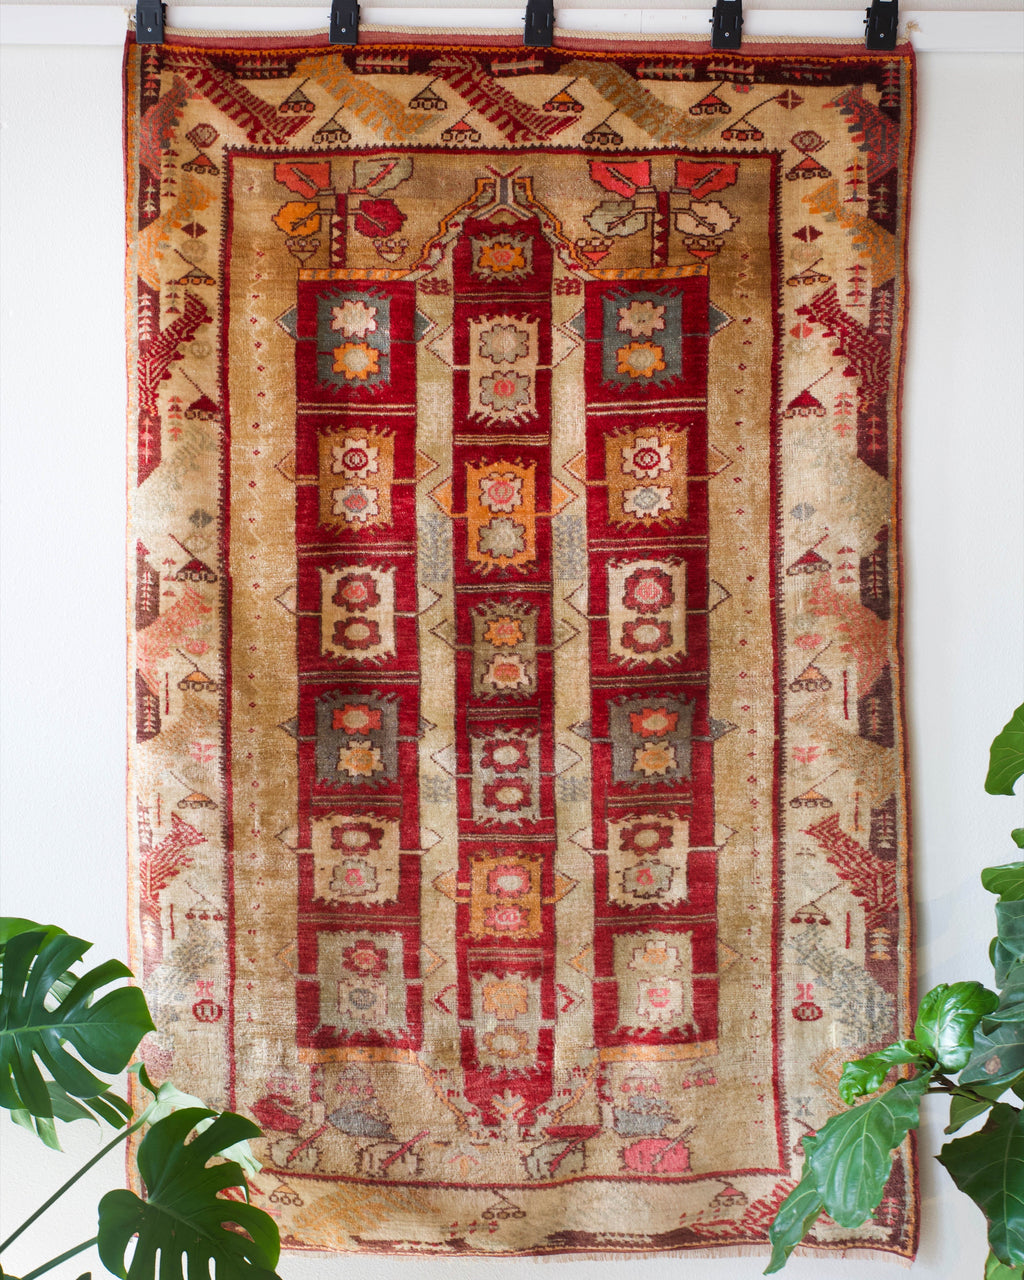 old rug, antique rug, earthy colors, faded colors, Turkish rug, vintage rug, soft rug, Portland, Oregon, rug store, rug shop, local shop, bold colors